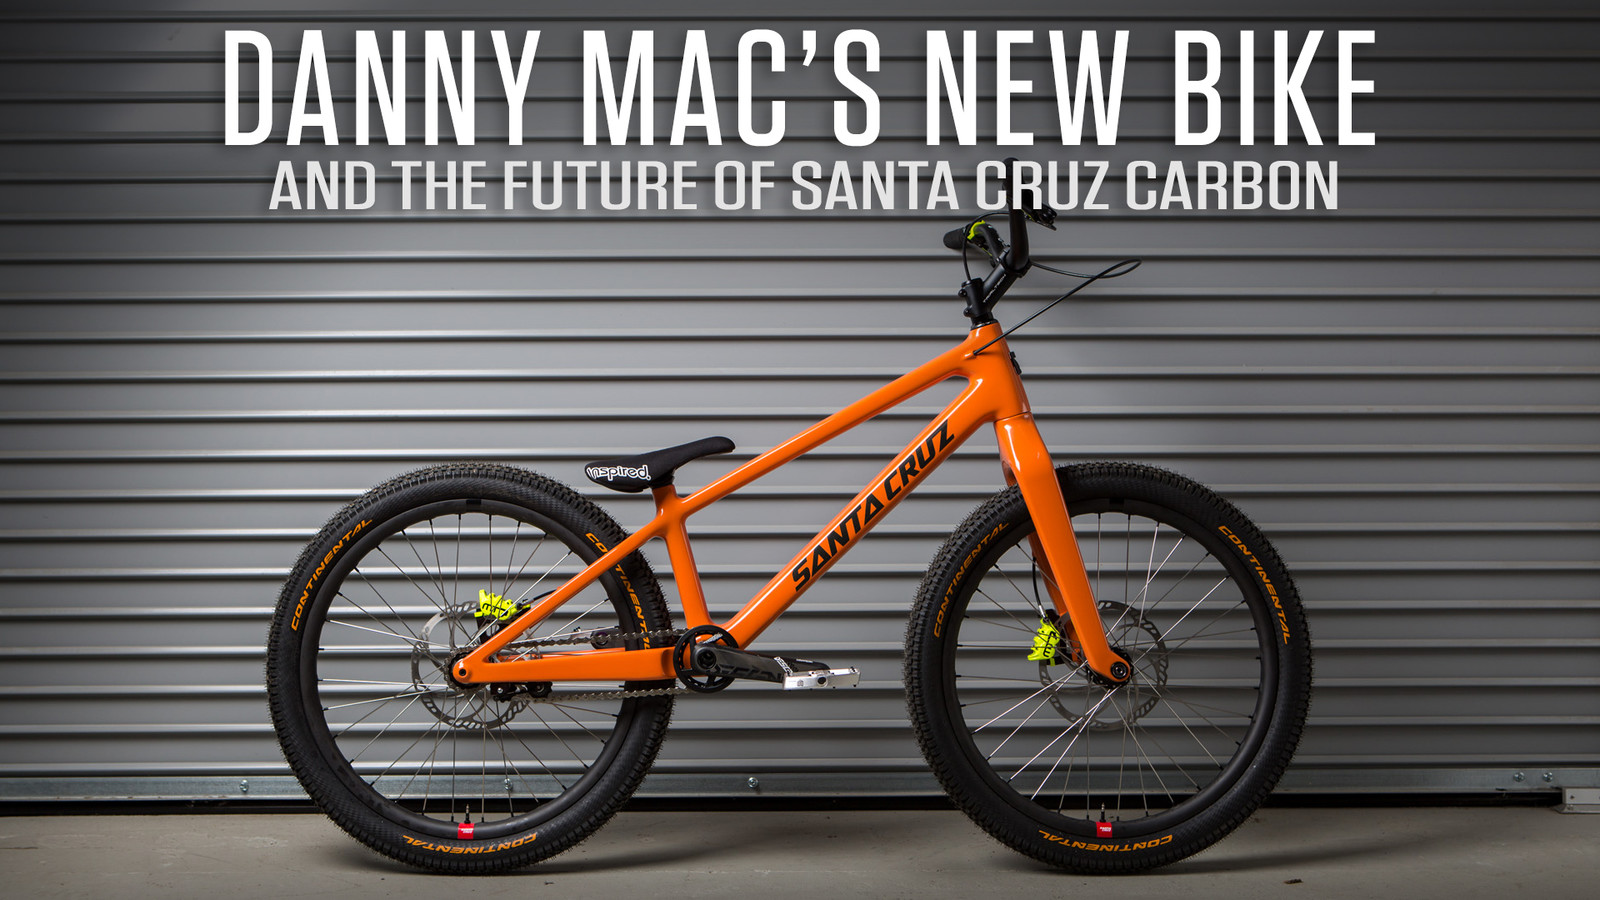 Danny MacAskill's Custom Trials Bike Represents the Future of Carbon for Santa Cruz